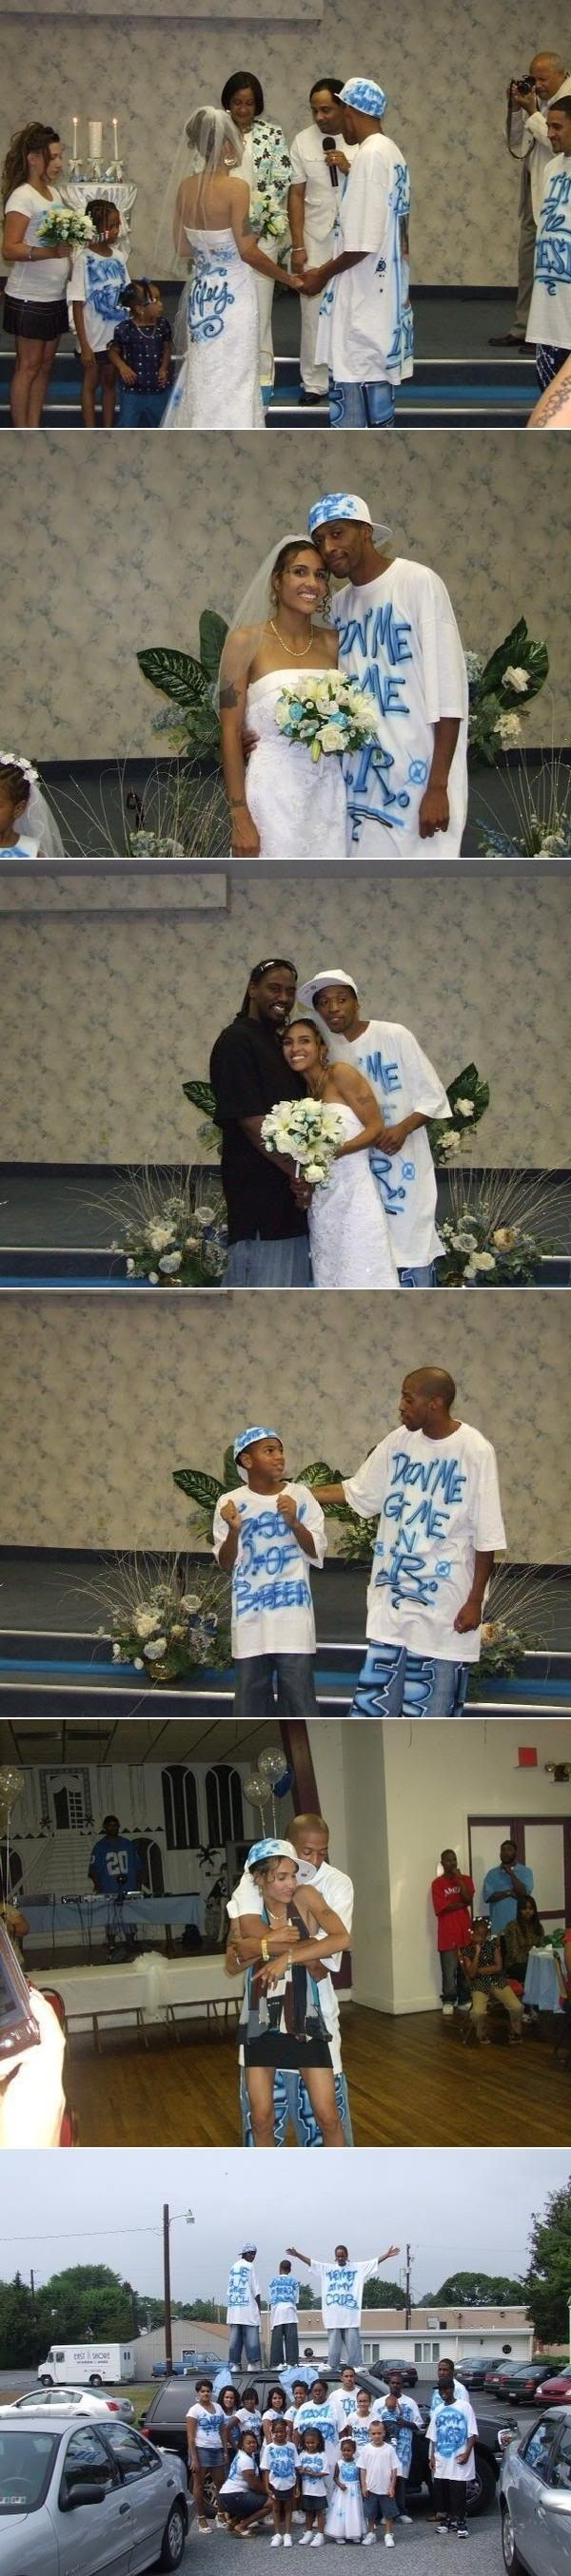 Happy Ghetto Wedding // funny pictures - funny photos - funny images - funny pics - funny quotes - #lol #humor #funnypictures